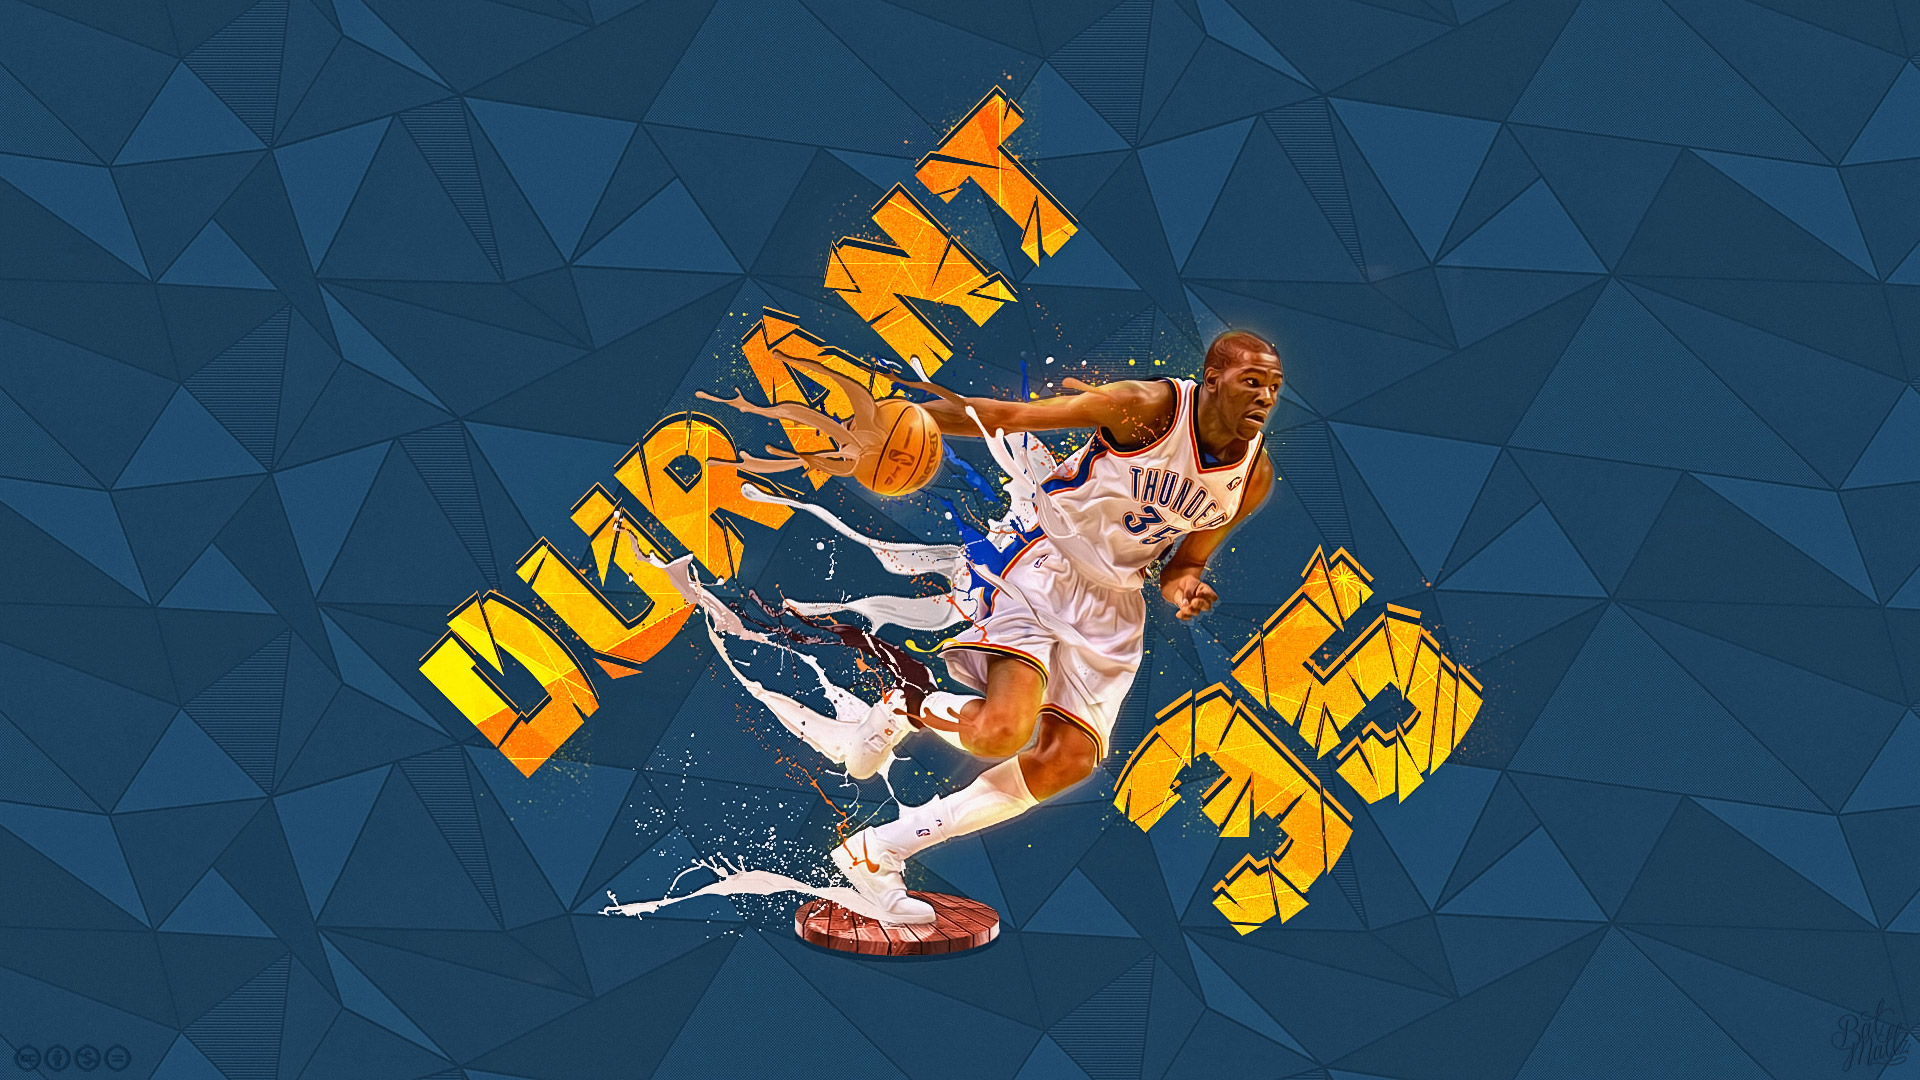 Kevin Durant HD Wallpaper | Background Image | 1920x1080 | ID:697975 - Wallpaper Abyss